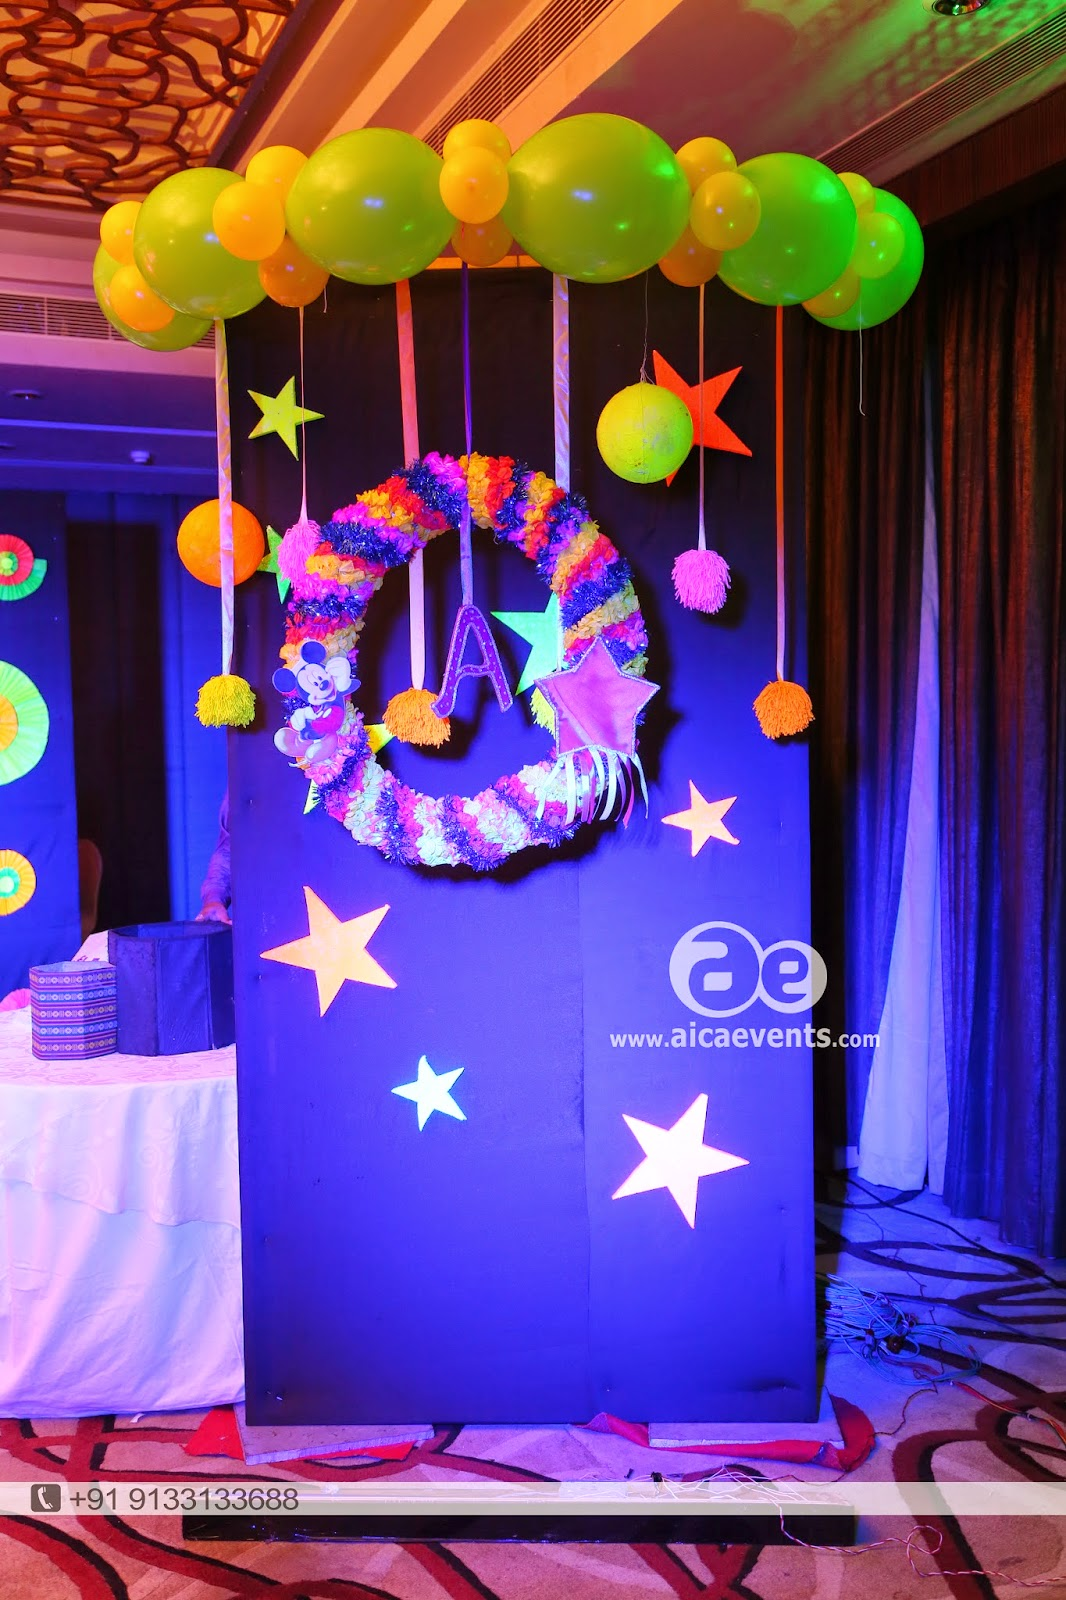 Aicaevents balloon wall stage backdrop decoration for Balloon backdrop decoration